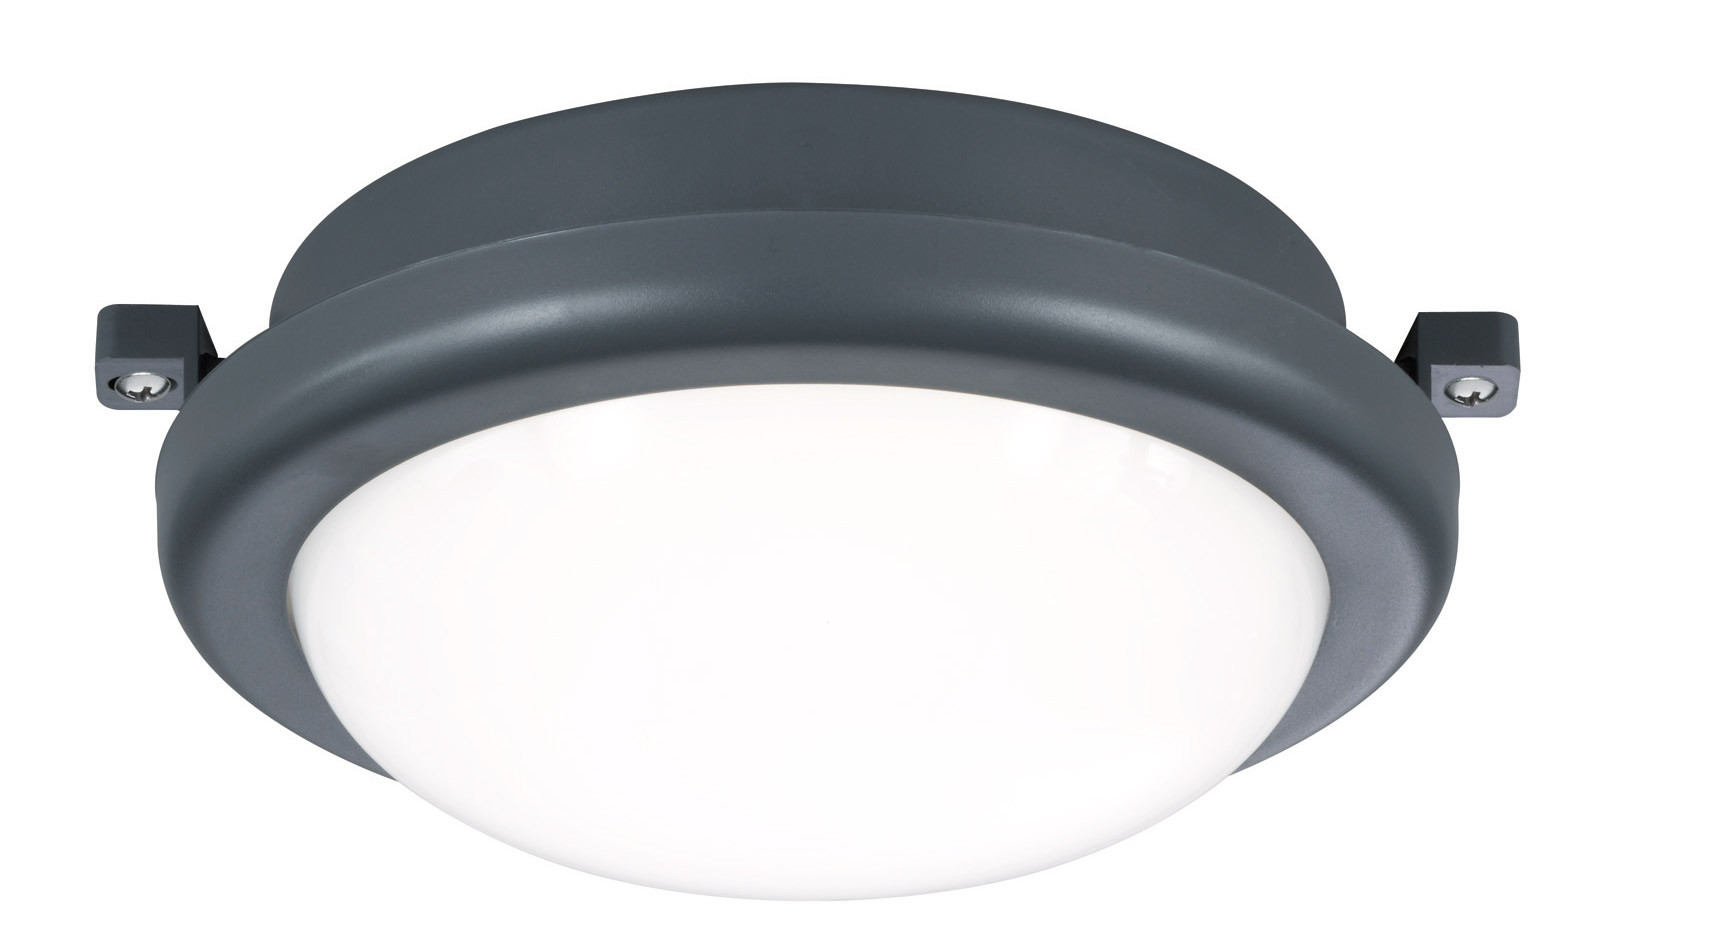 LED-kattovalaisin Trio Hamal Ø170x75 mm, antrasiitti IP54